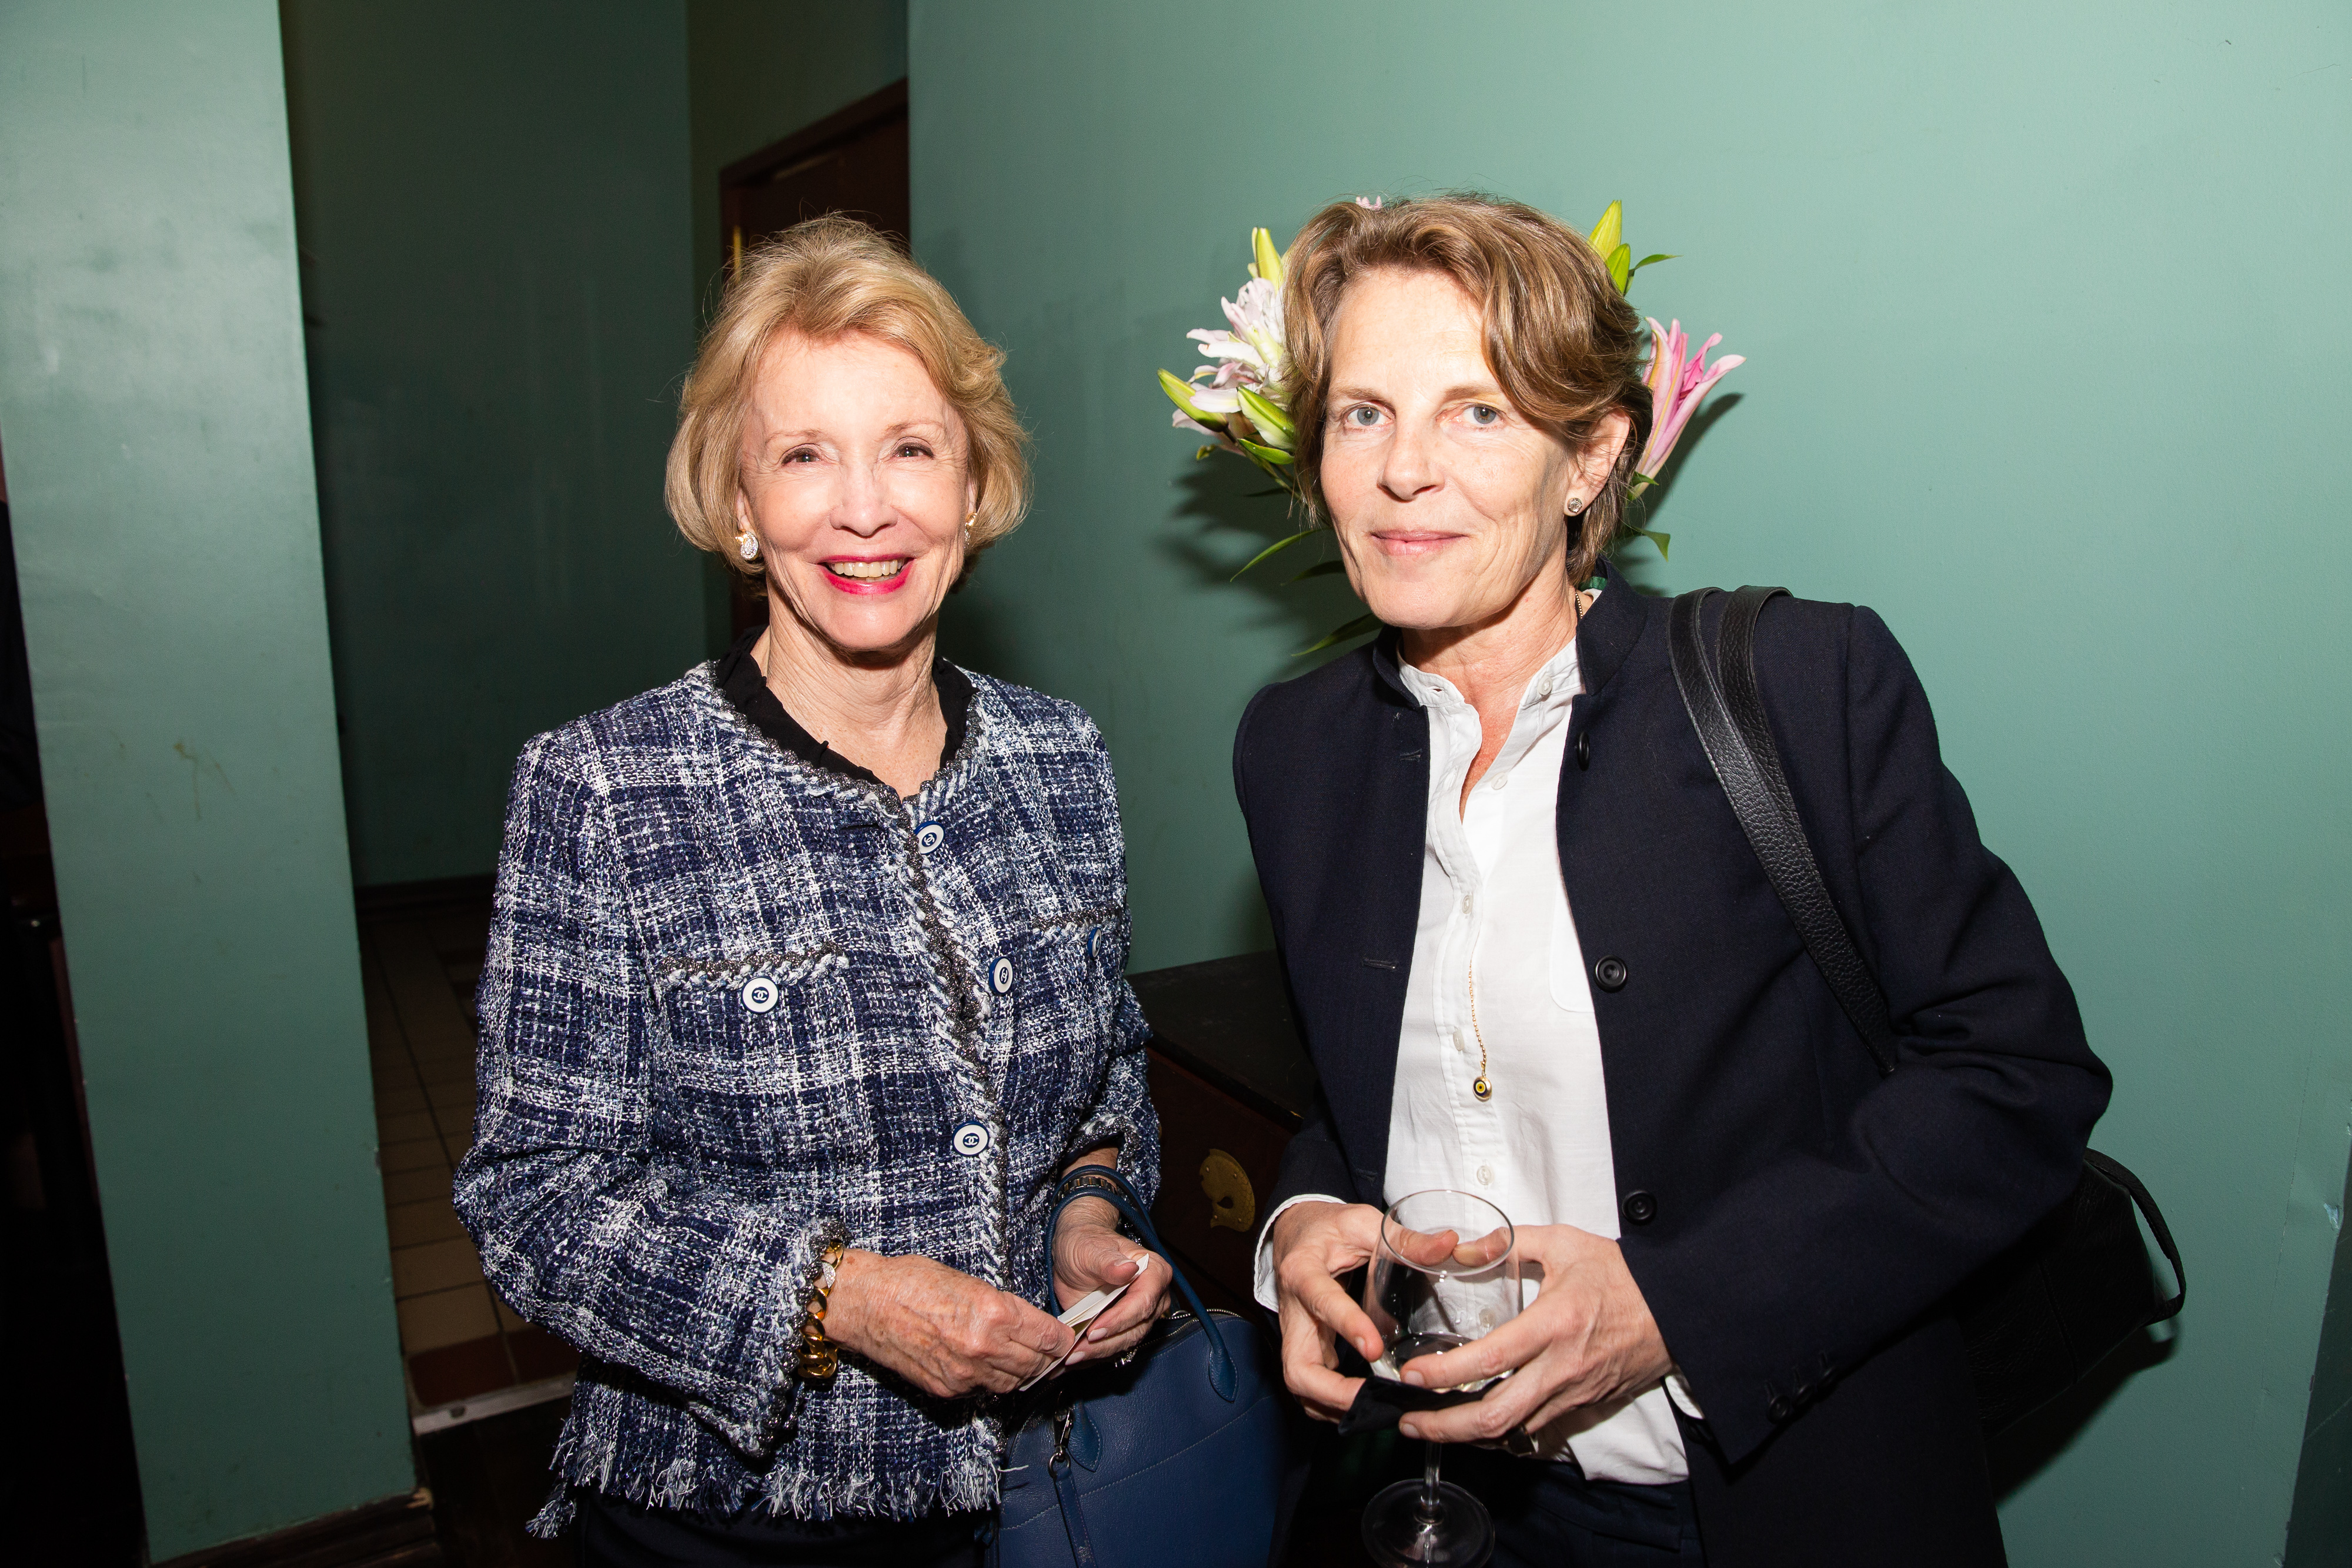 From left, Emily Frick and Annabelle Selldorf.